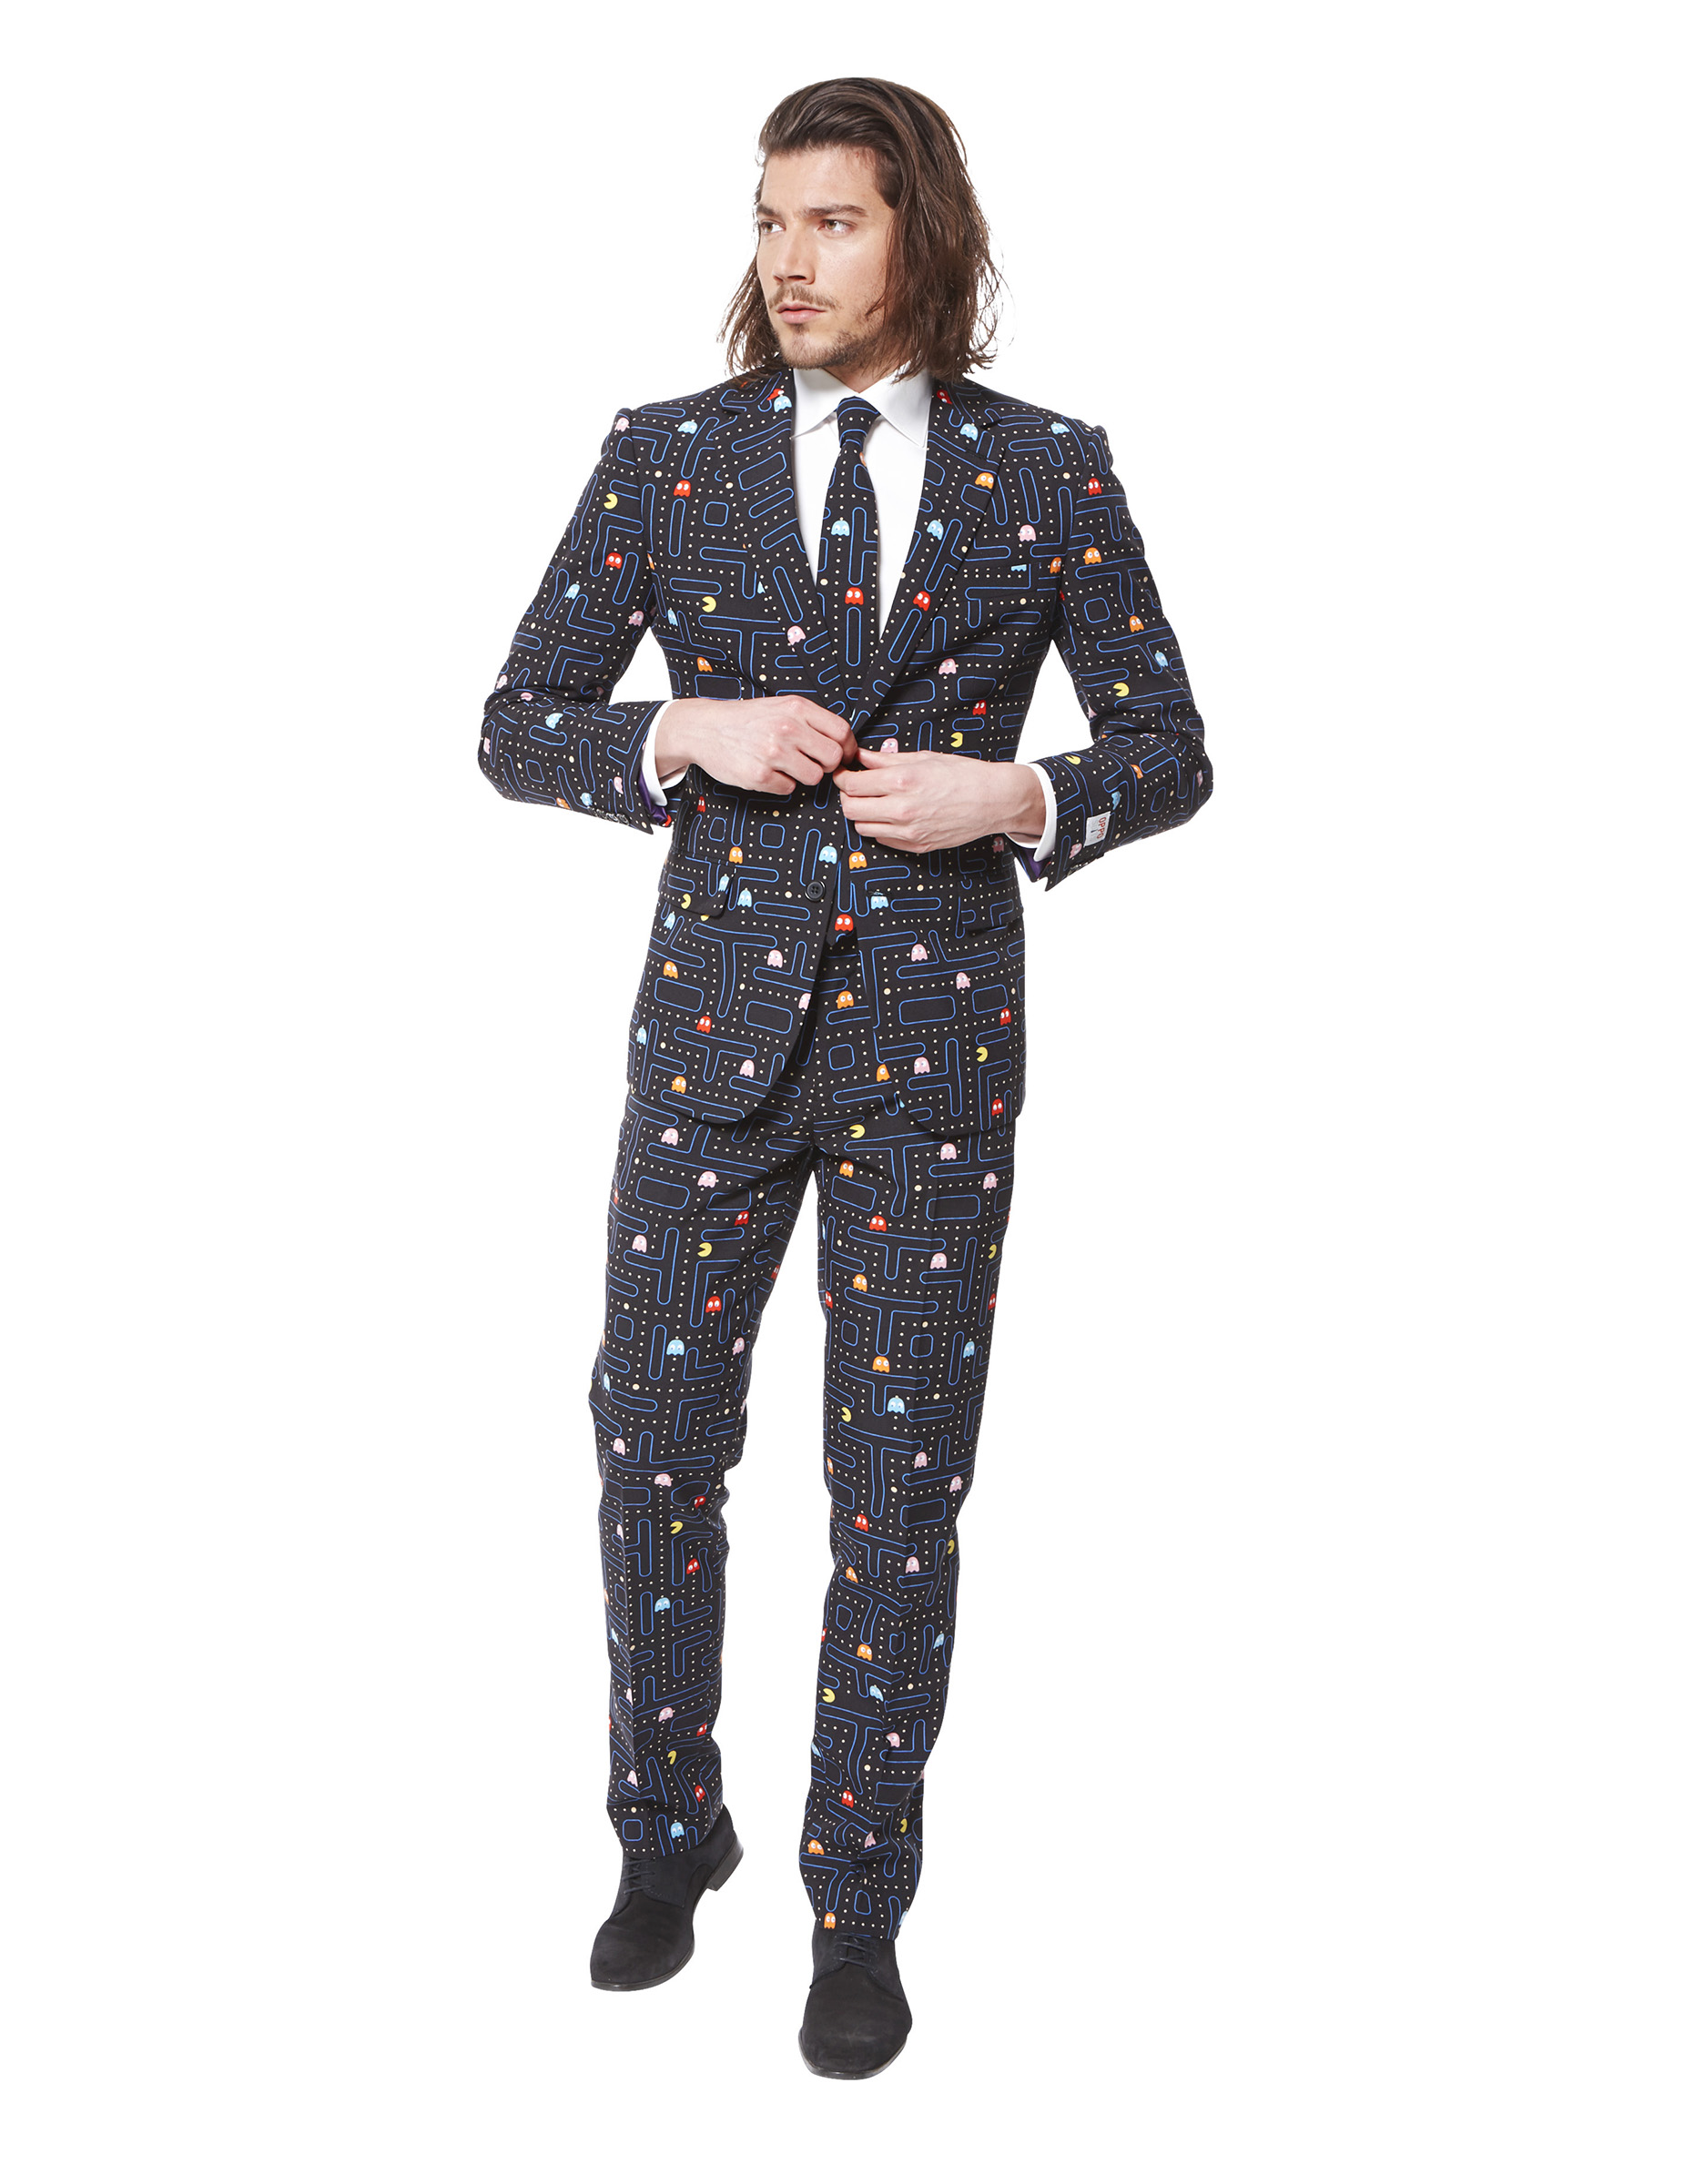 costume mr pac man homme opposuits deguise toi achat de d guisements adultes. Black Bedroom Furniture Sets. Home Design Ideas